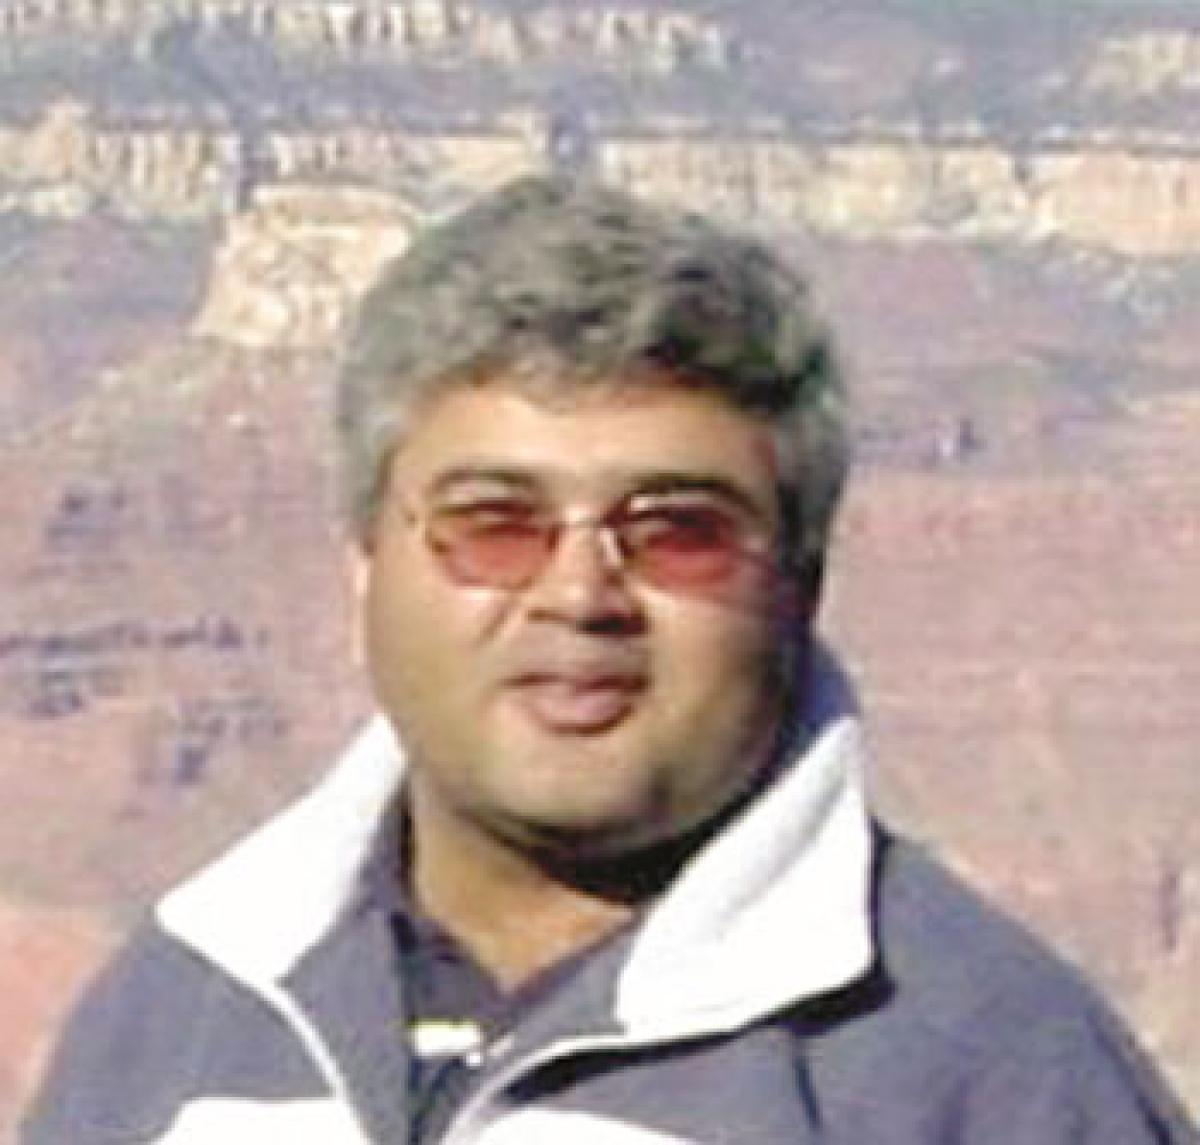 Rubique appoints Mishra as CTO